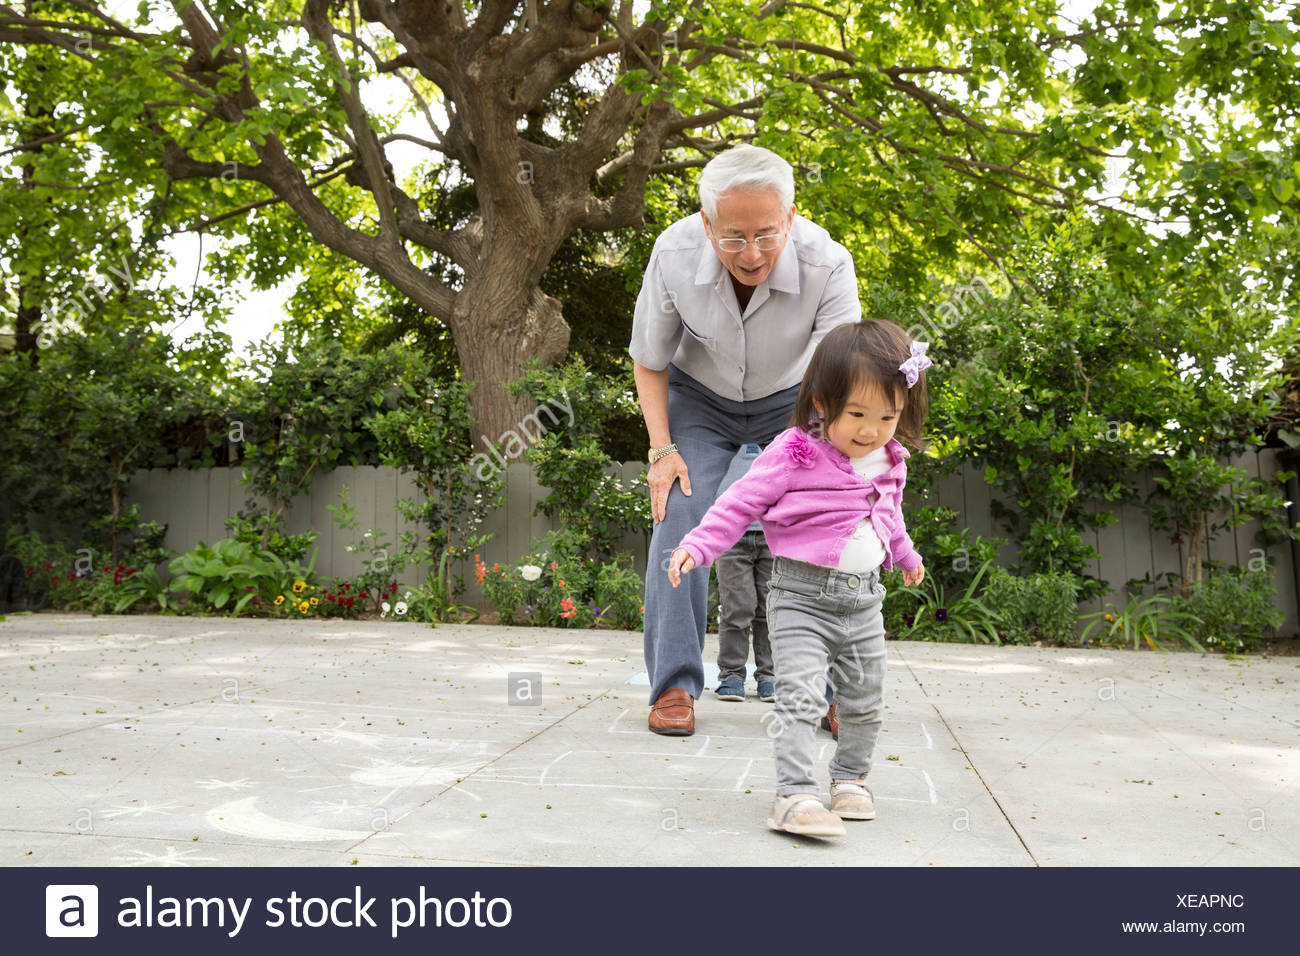 Grandfather playing hopscotch with toddler granddaughter Stock Photo